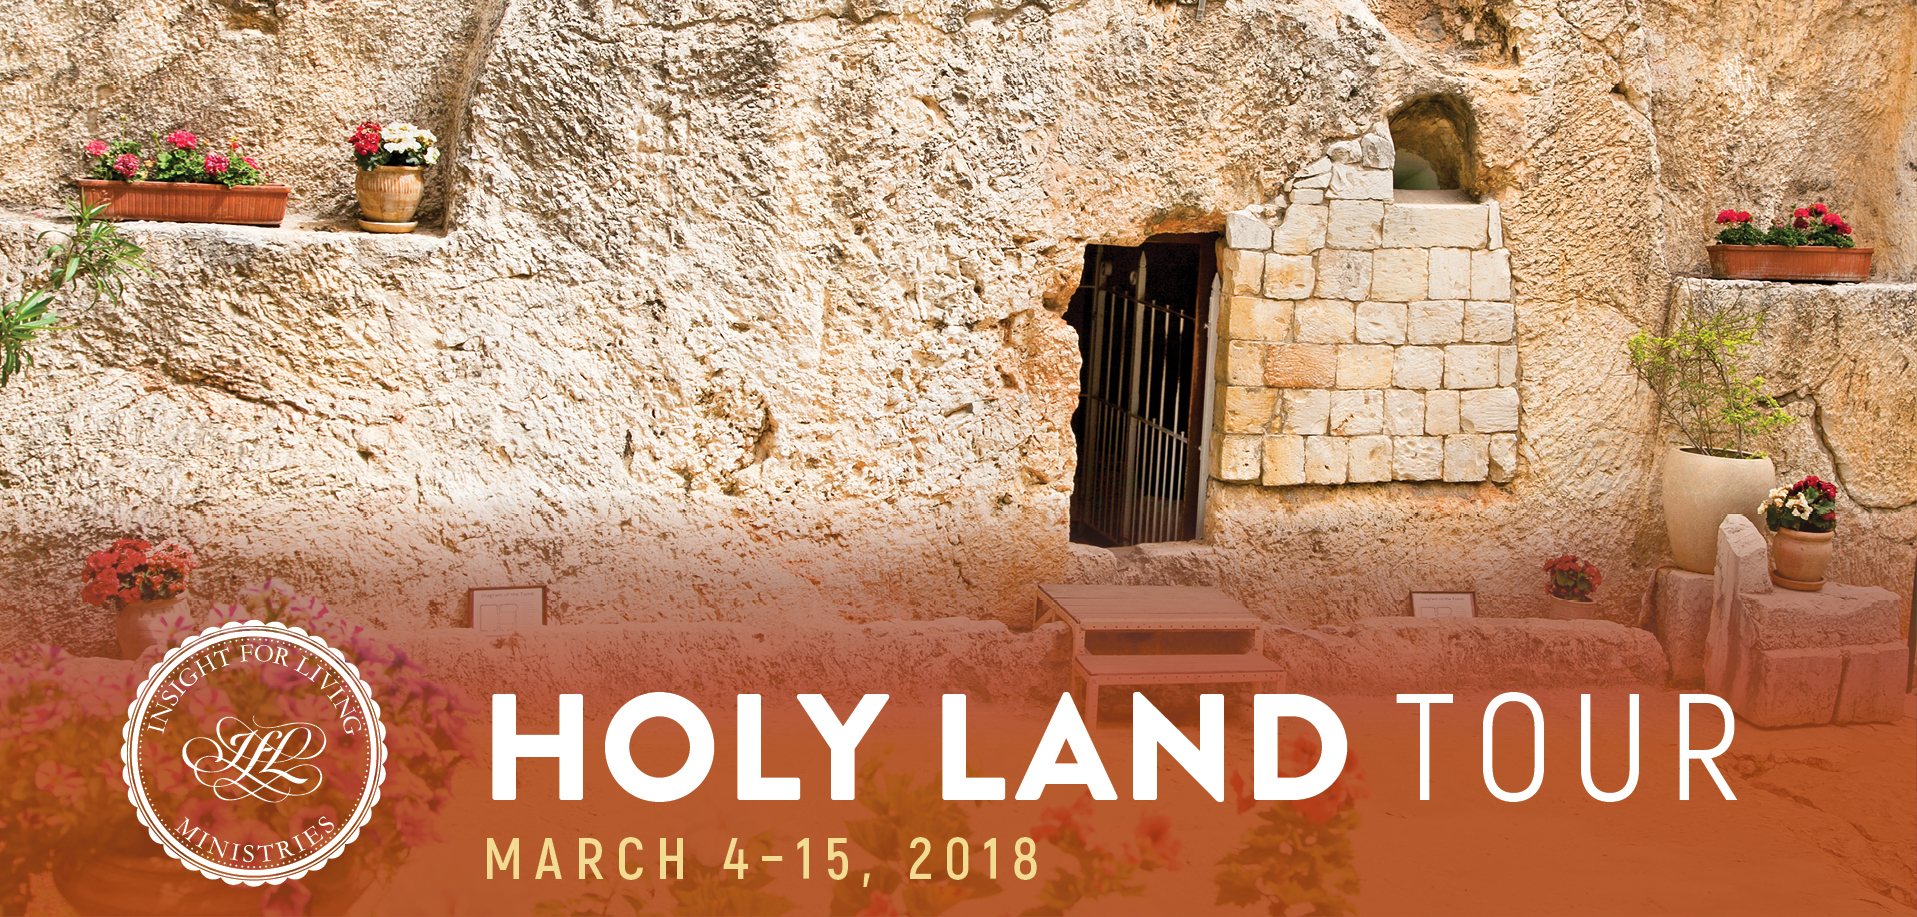 Take a Christian TourWOX with Insight for Living - Israel Tour - March 4-15, 2018